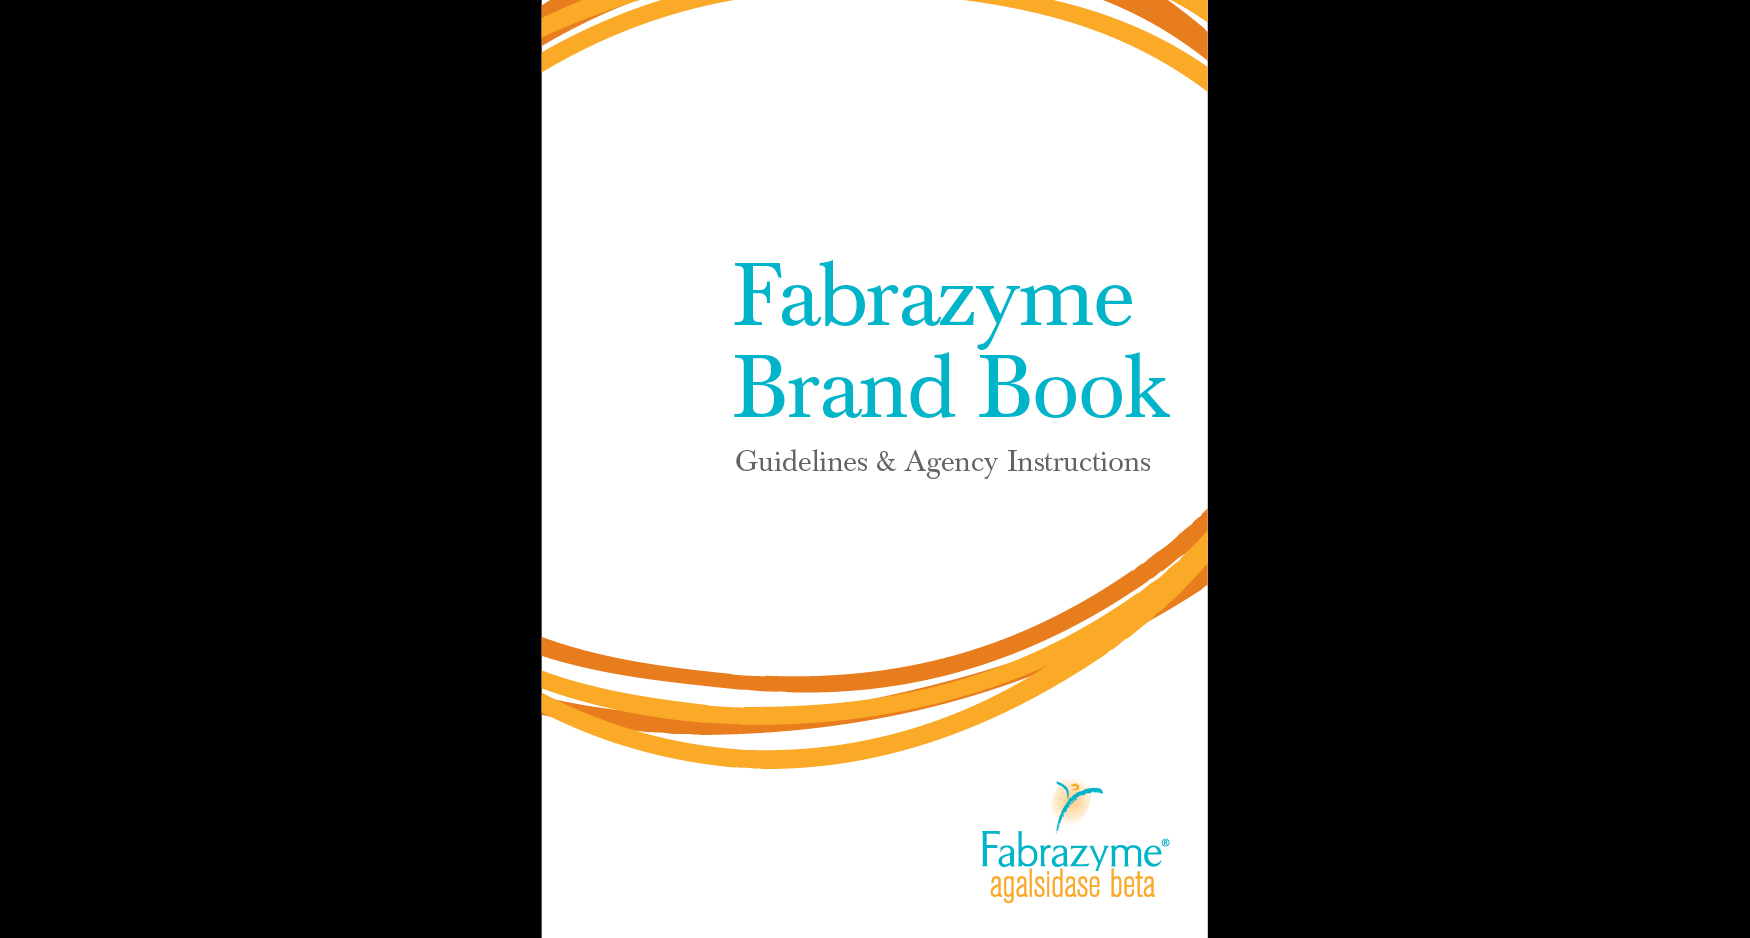 BP Large Images64 - FABRAZYME - BRAND GUIDELINES